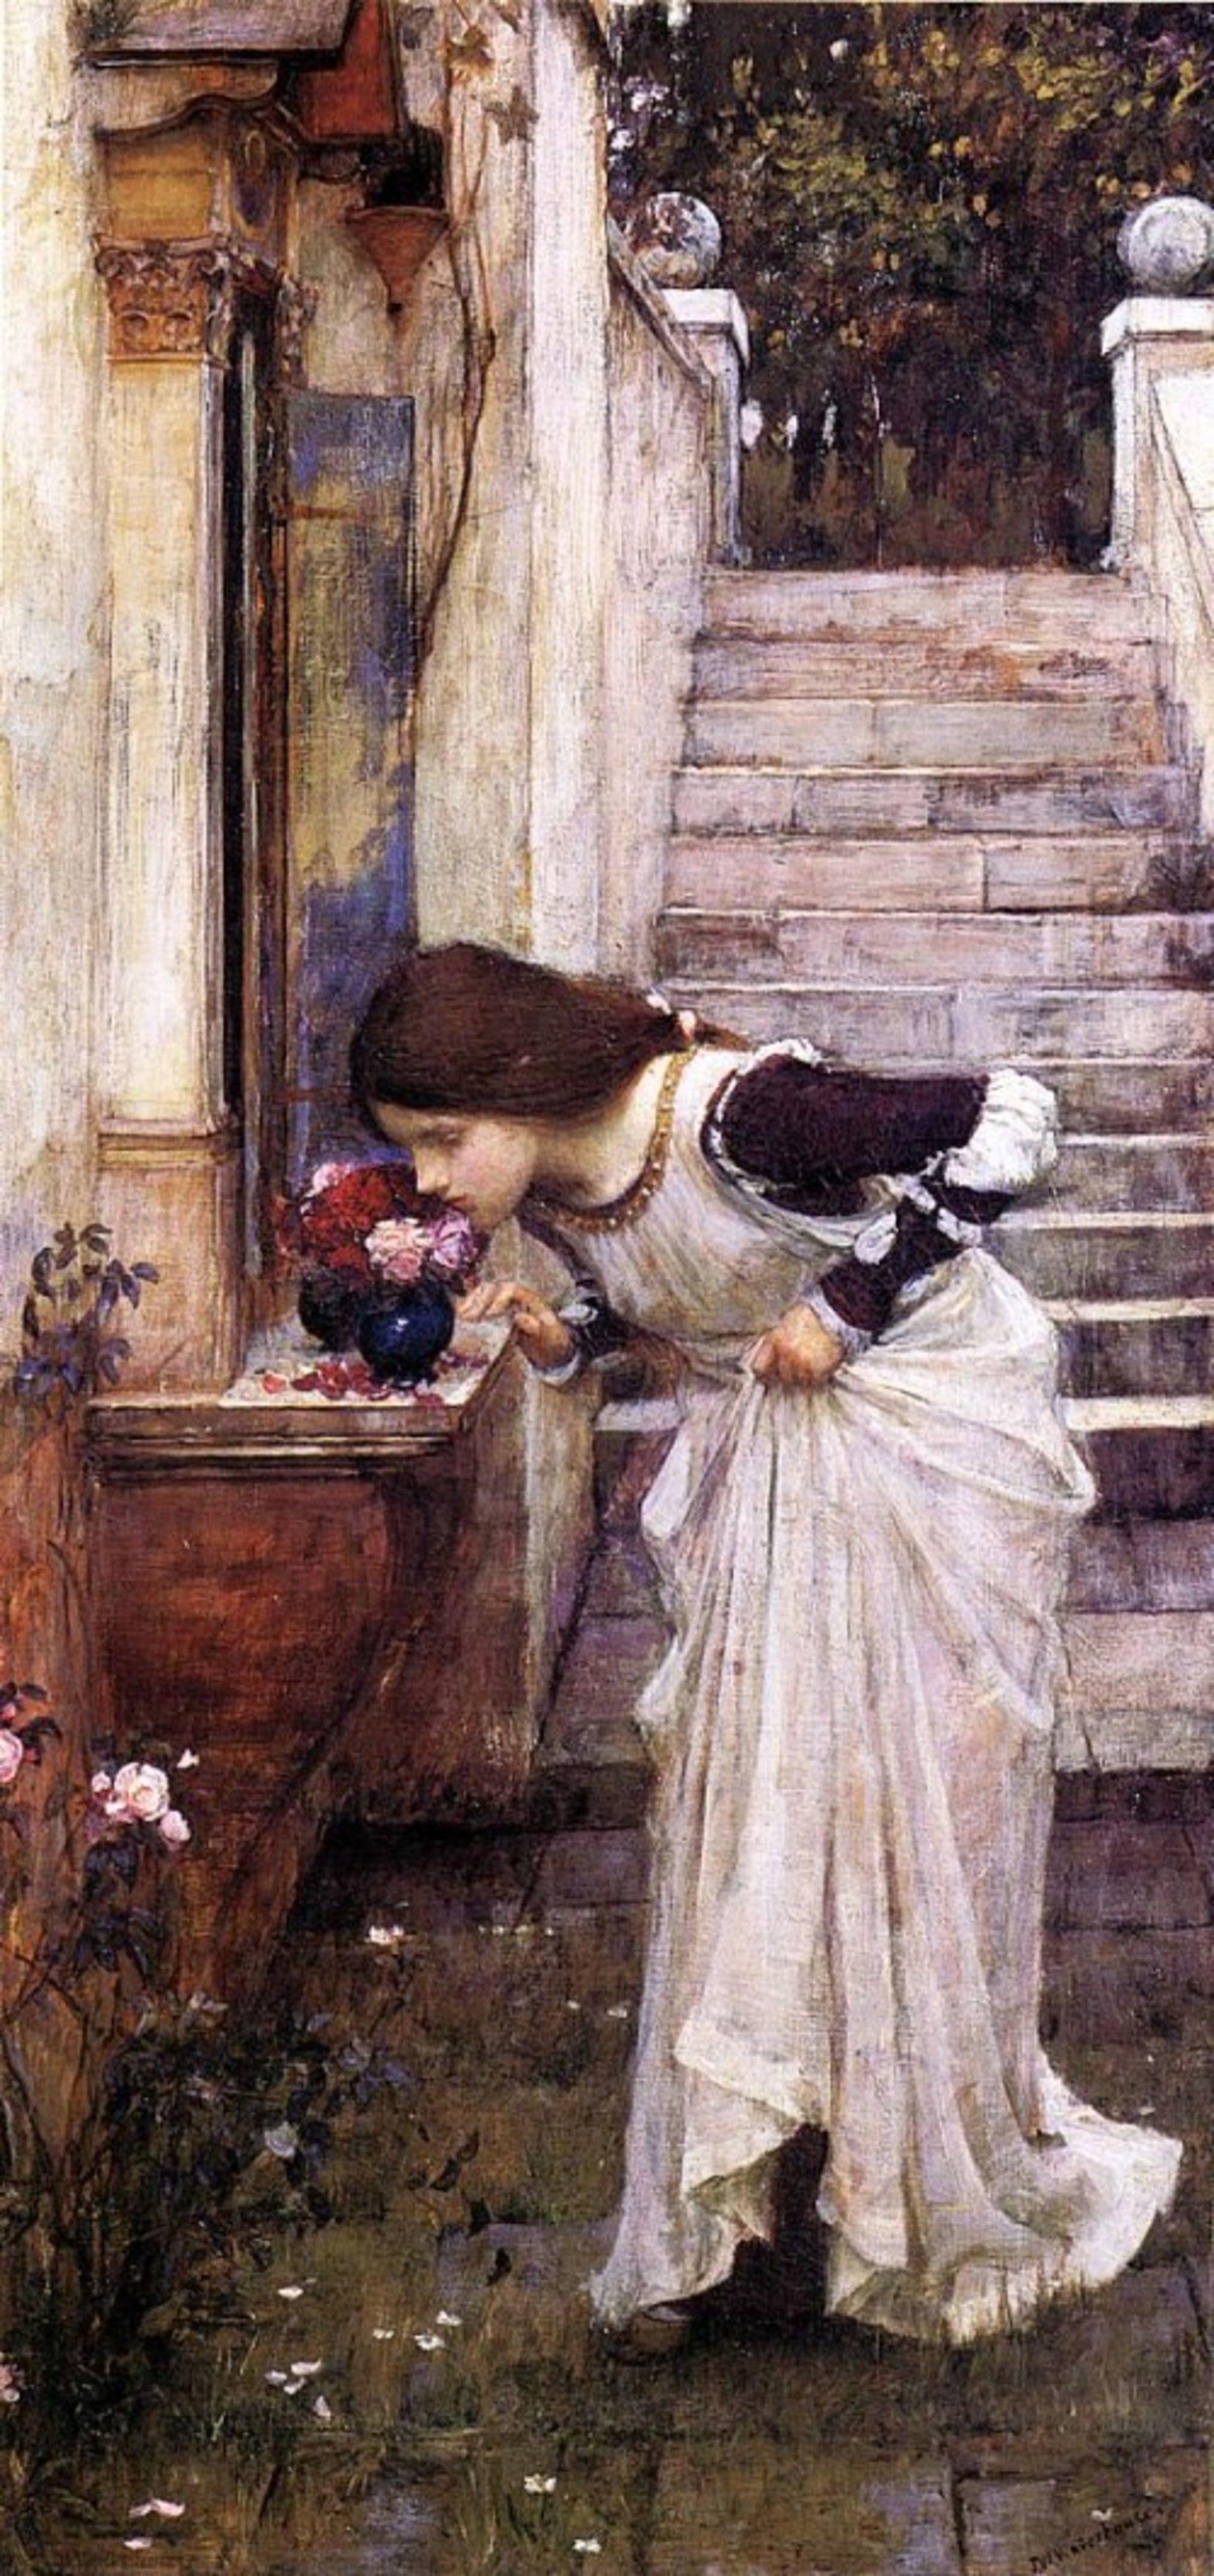 John_William_Waterhouse_-_The_Shrine.jpg